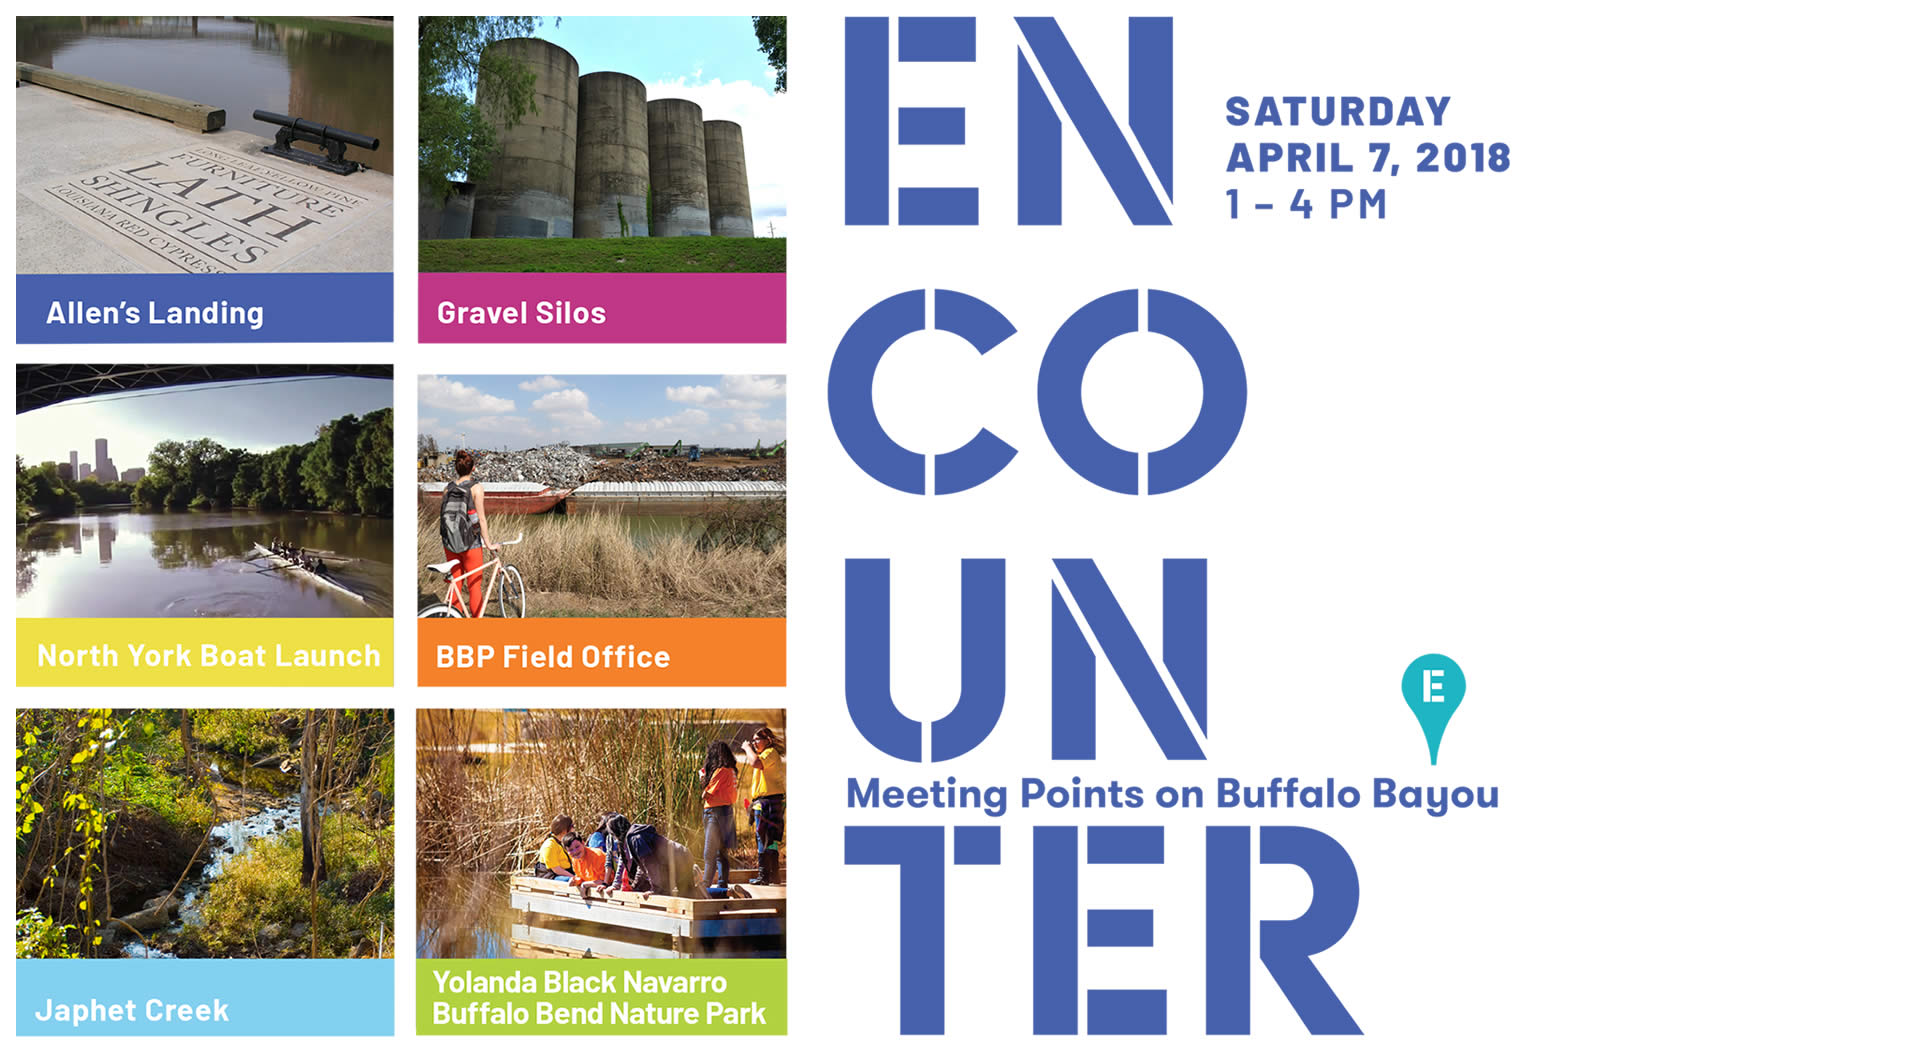 UH GAP | ENCOUNTER: Meeting Points on Buffalo Bayou